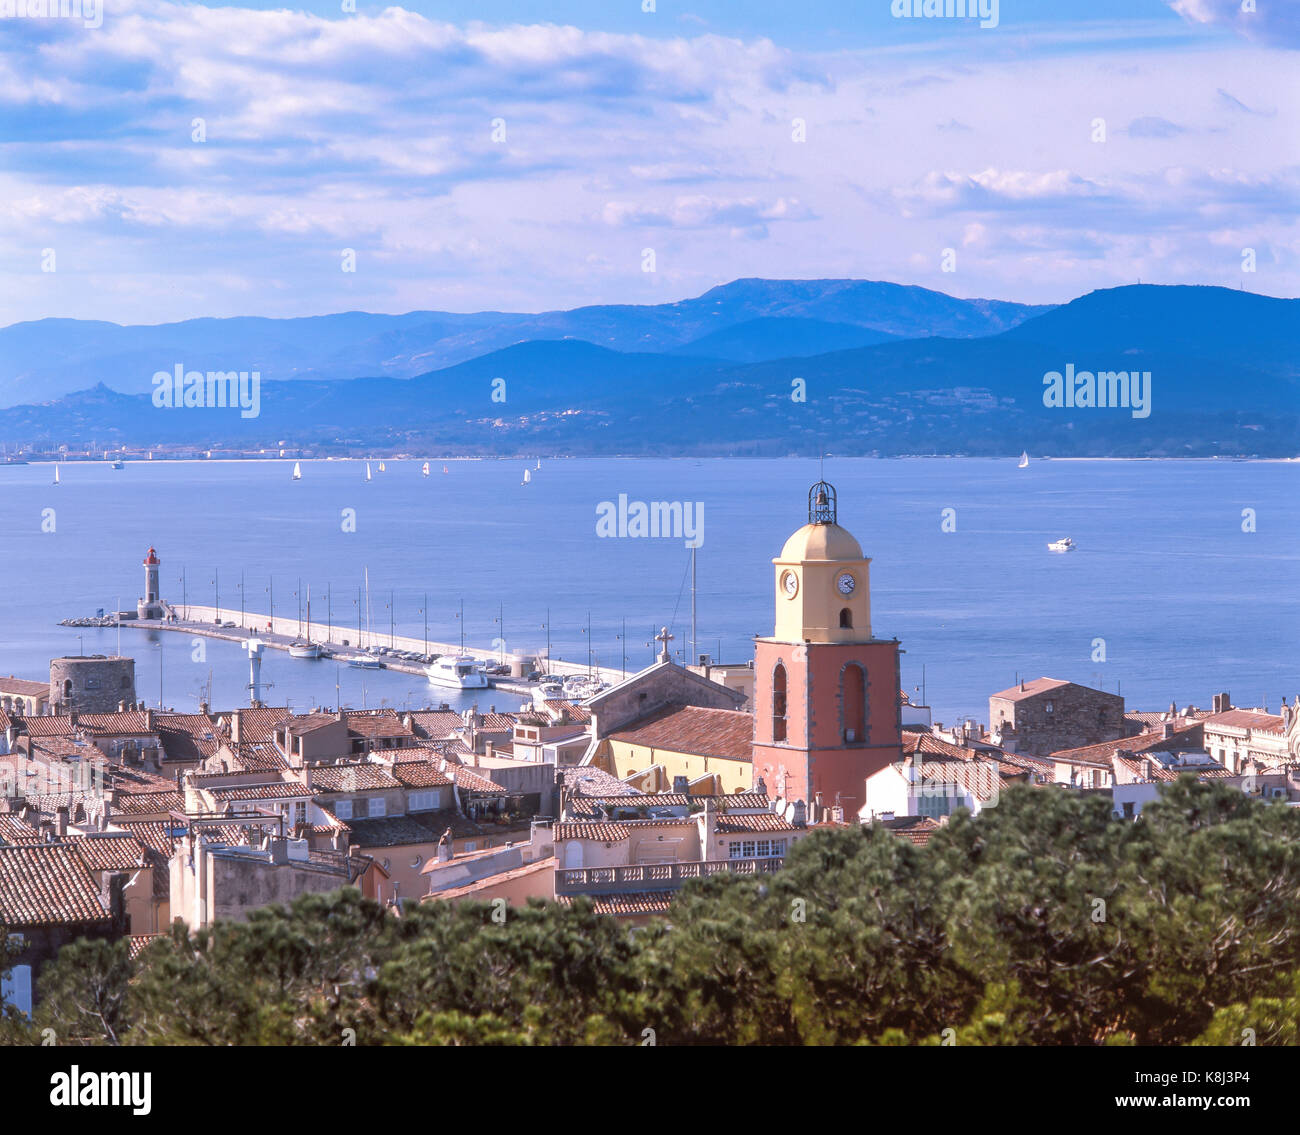 Old Town and harbour from Fort, Saint-Tropez, Var, Provence-Alpes-Côte d'Azur, France - Stock Image